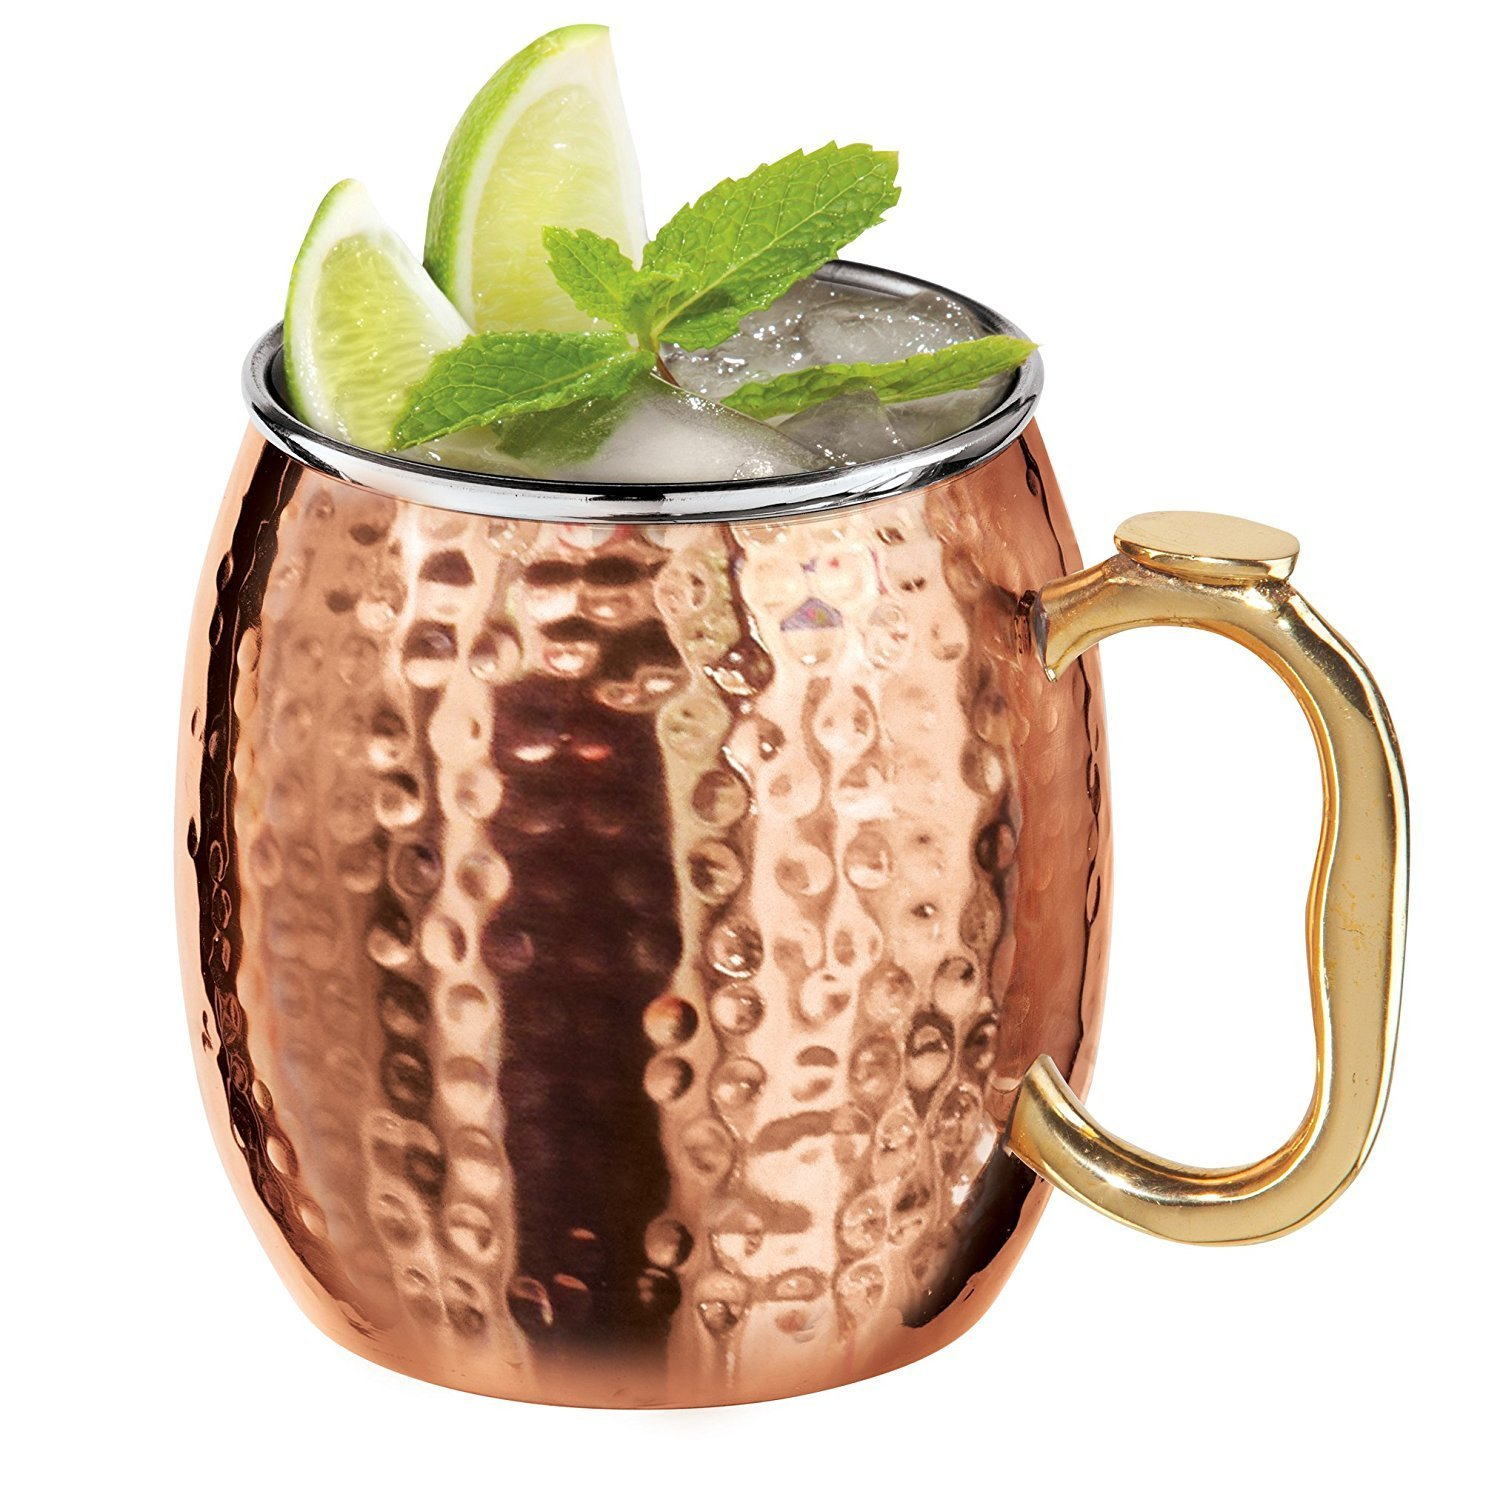 DreamKraft Hamme Copper Moscow Mule Mug Handmade Of Copper With Brass Handle 550 ML Gold by DreamKraft (Image #4)